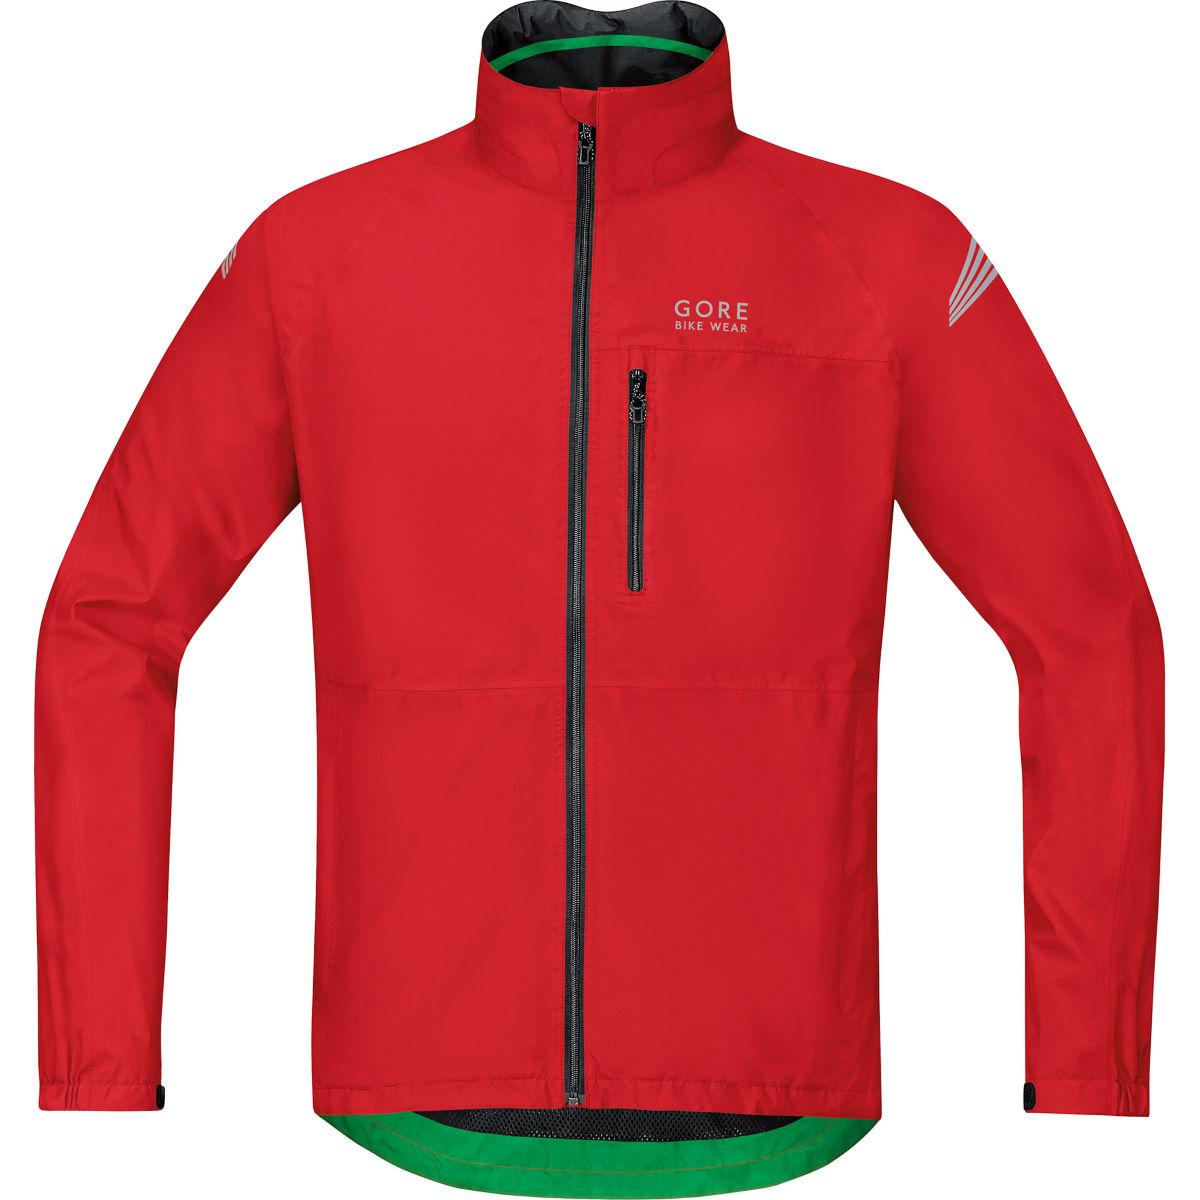 Veste Gore Bike Wear Element Gore-Tex - S Rouge Vestes imperméables vélo